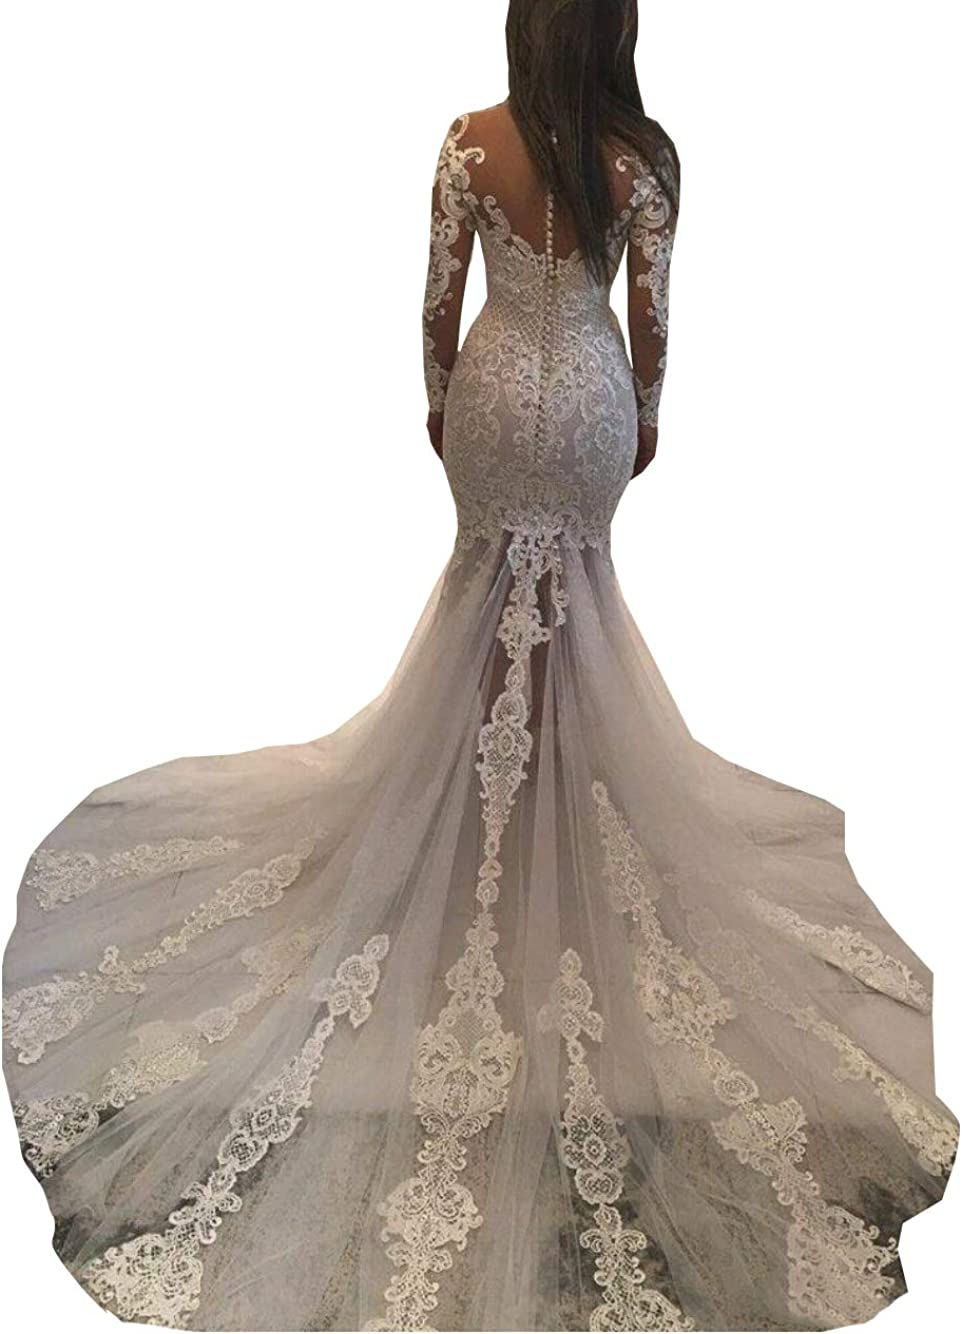 Mermaid Wedding Dresses for Bride 2021 Illusion Lace Beaded Long Sleeve Corset Bridal Gowns Train